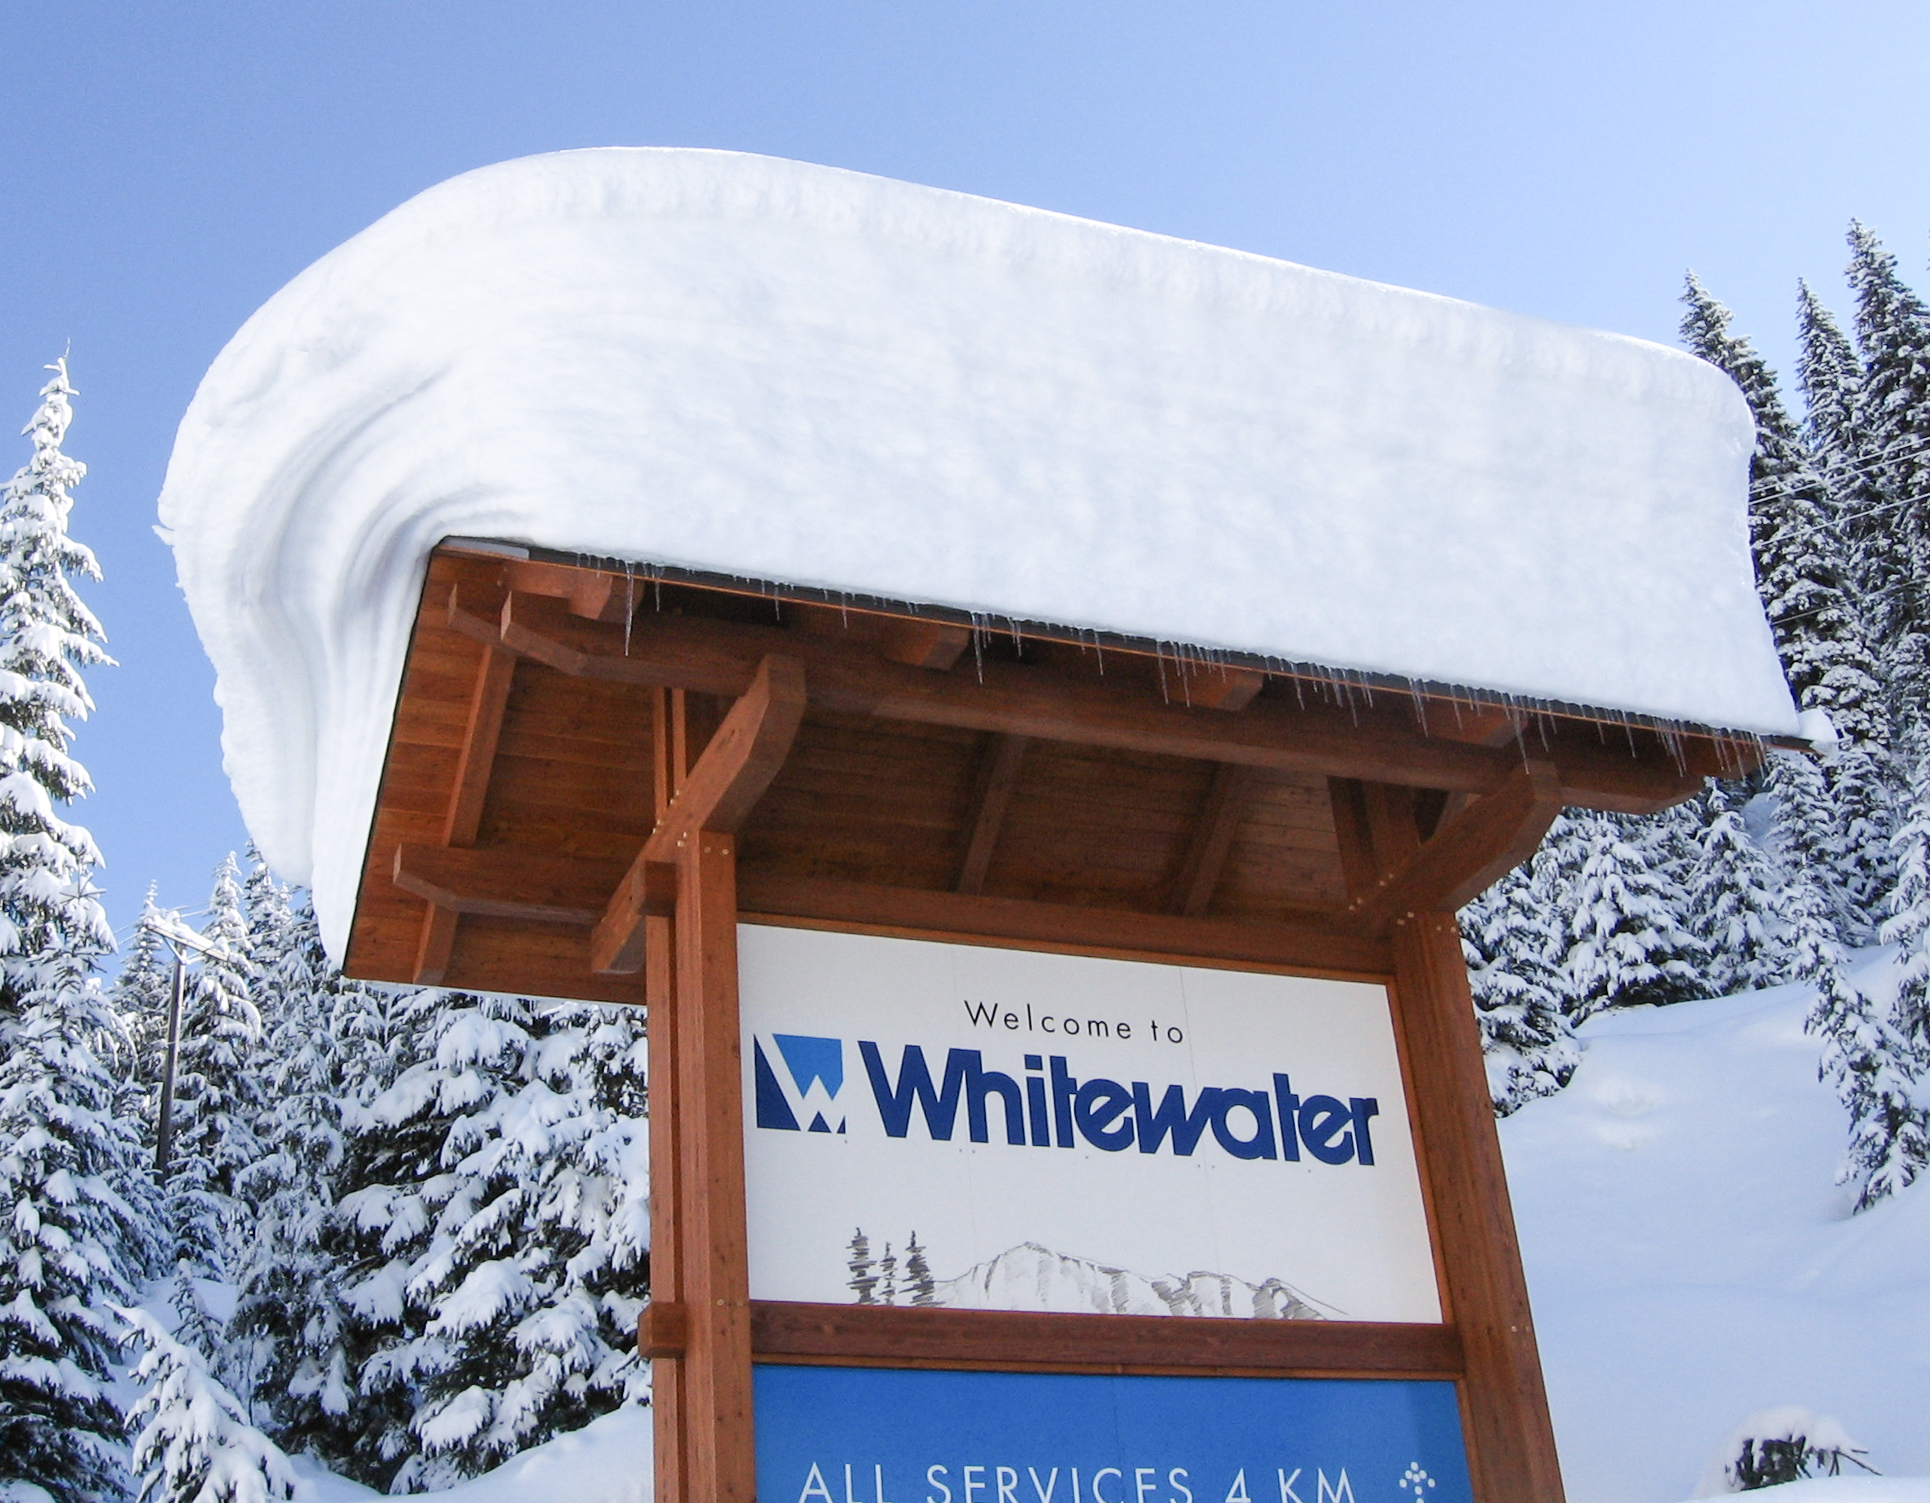 Whitewater SIgn under Snow